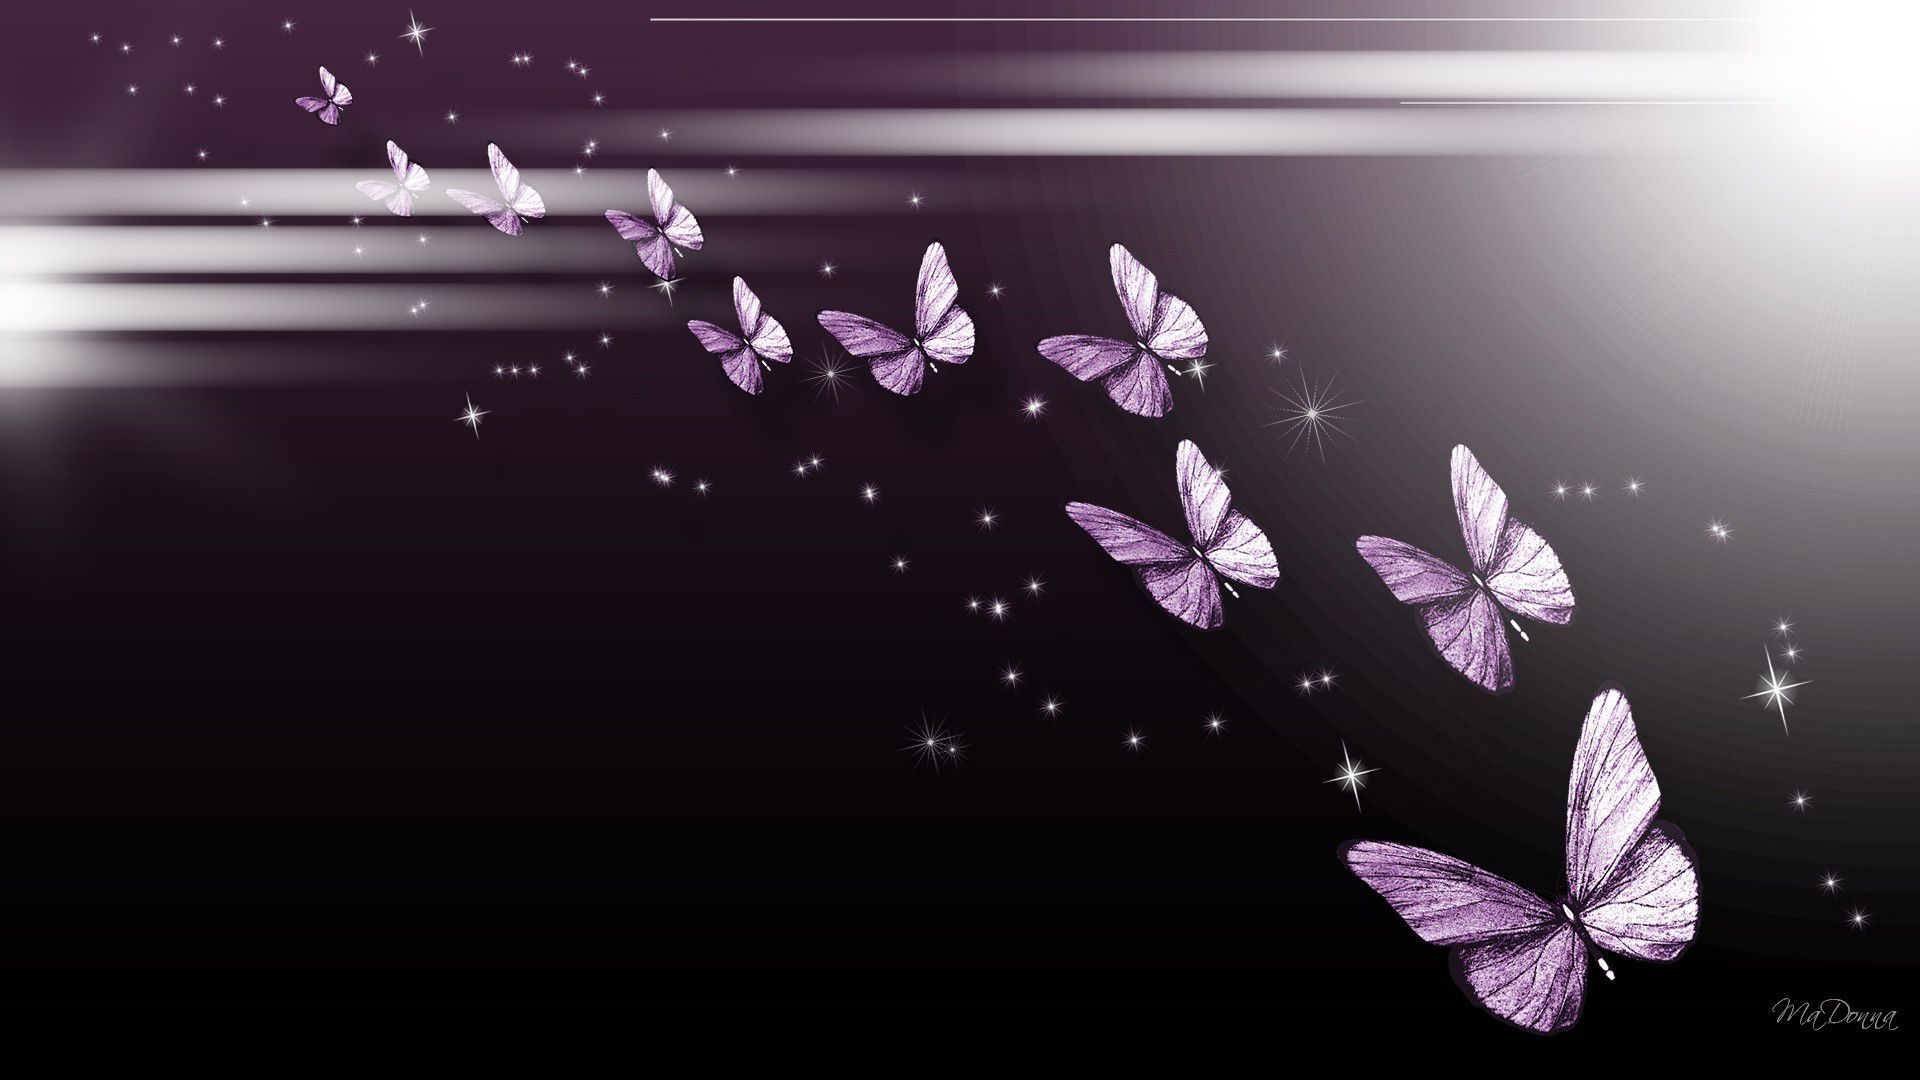 1920x1080 Purple Butterfly Parade wallpaper free | Fibro Faith Hope ...